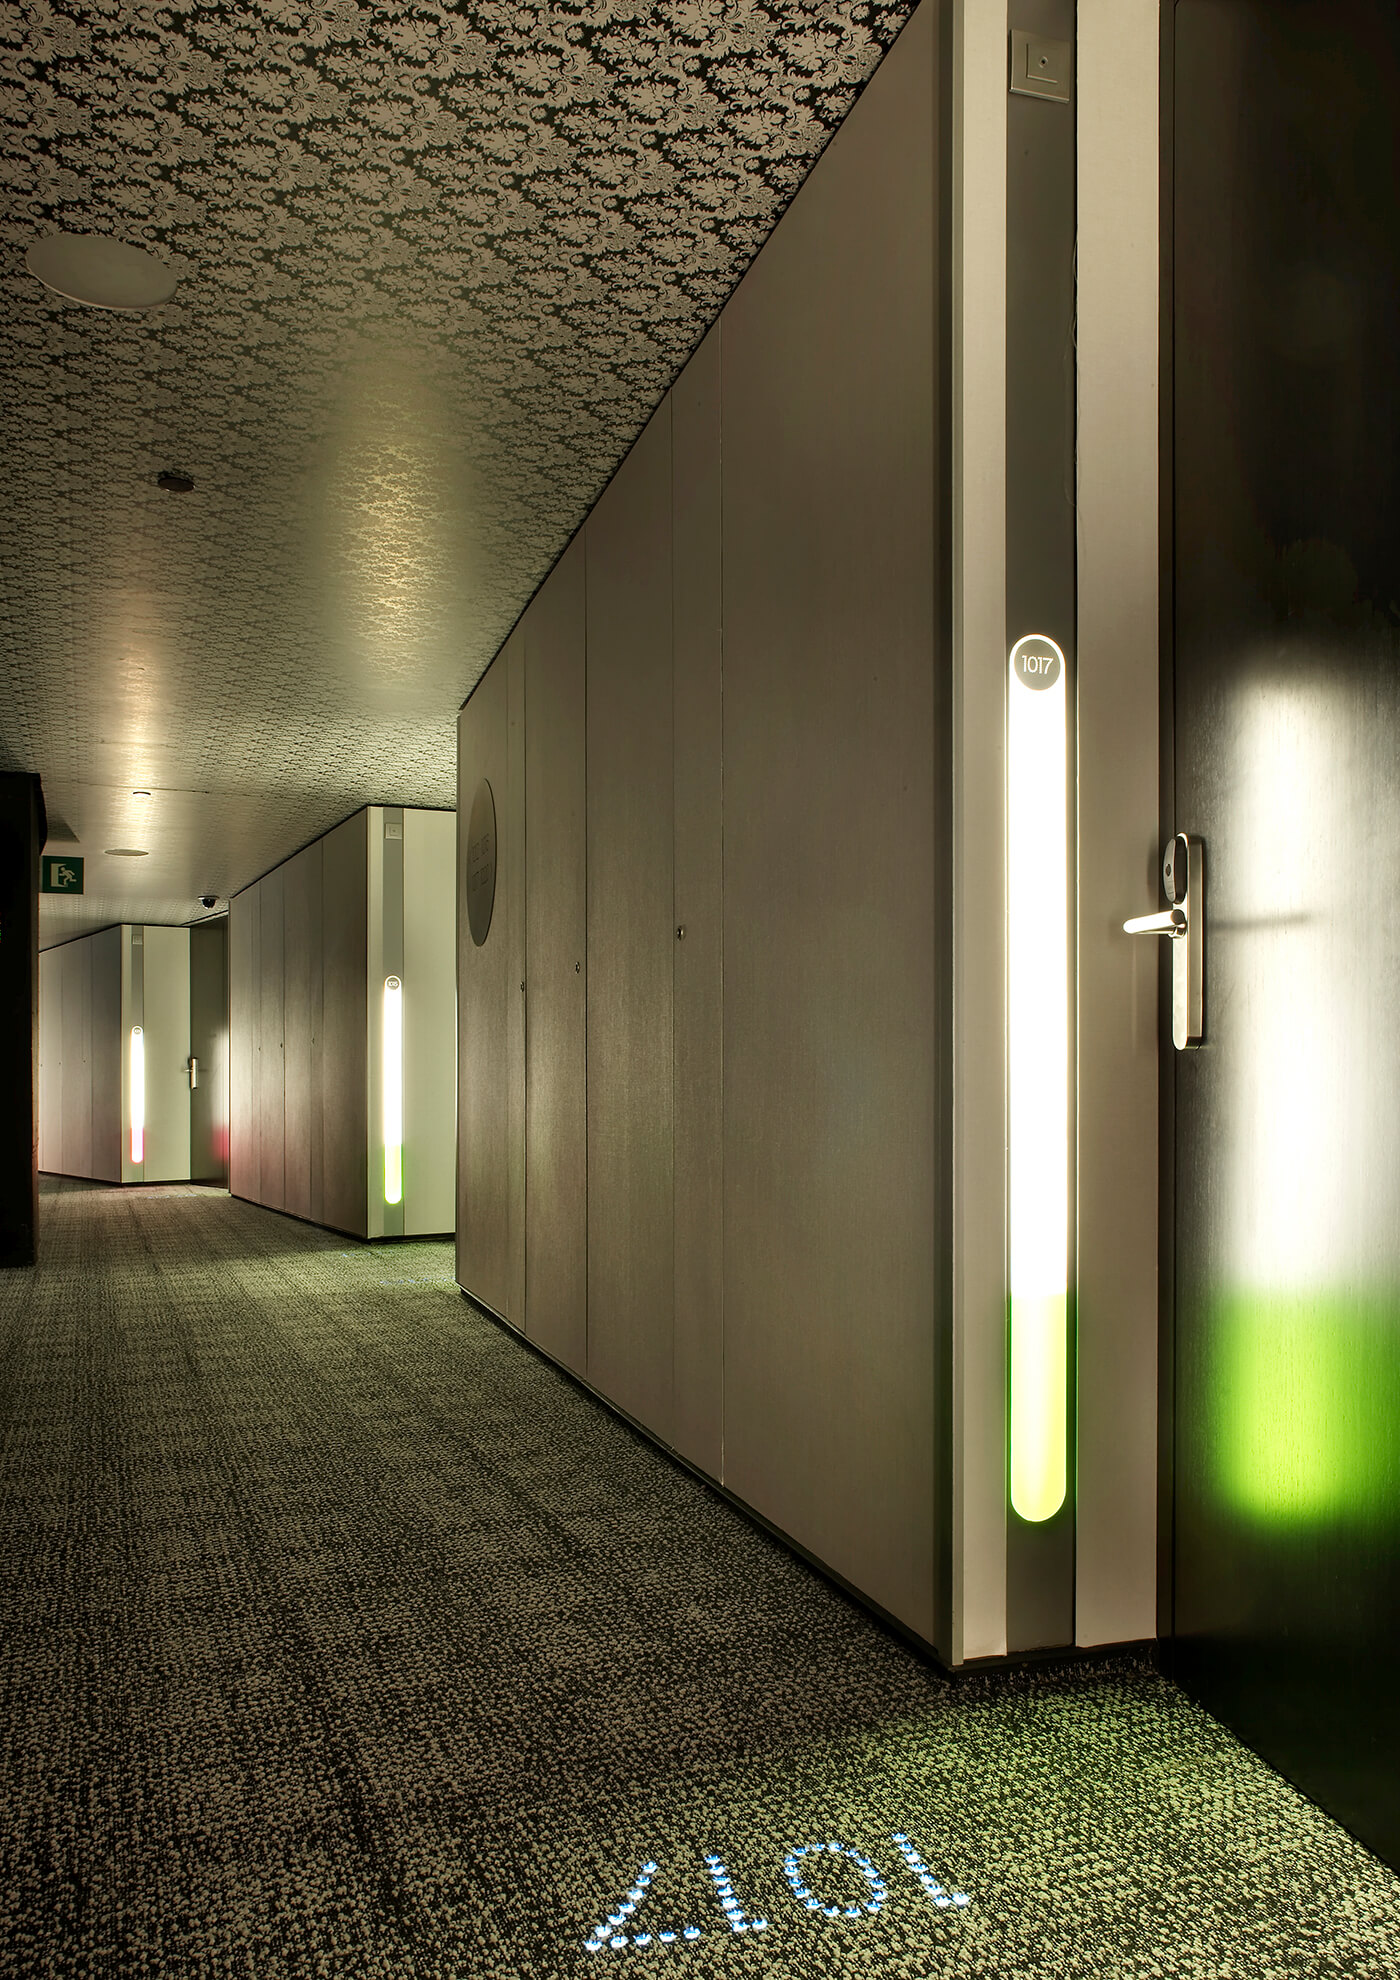 Another detail view of a hallway with modern patterned ceiling and wall of the hotel raval